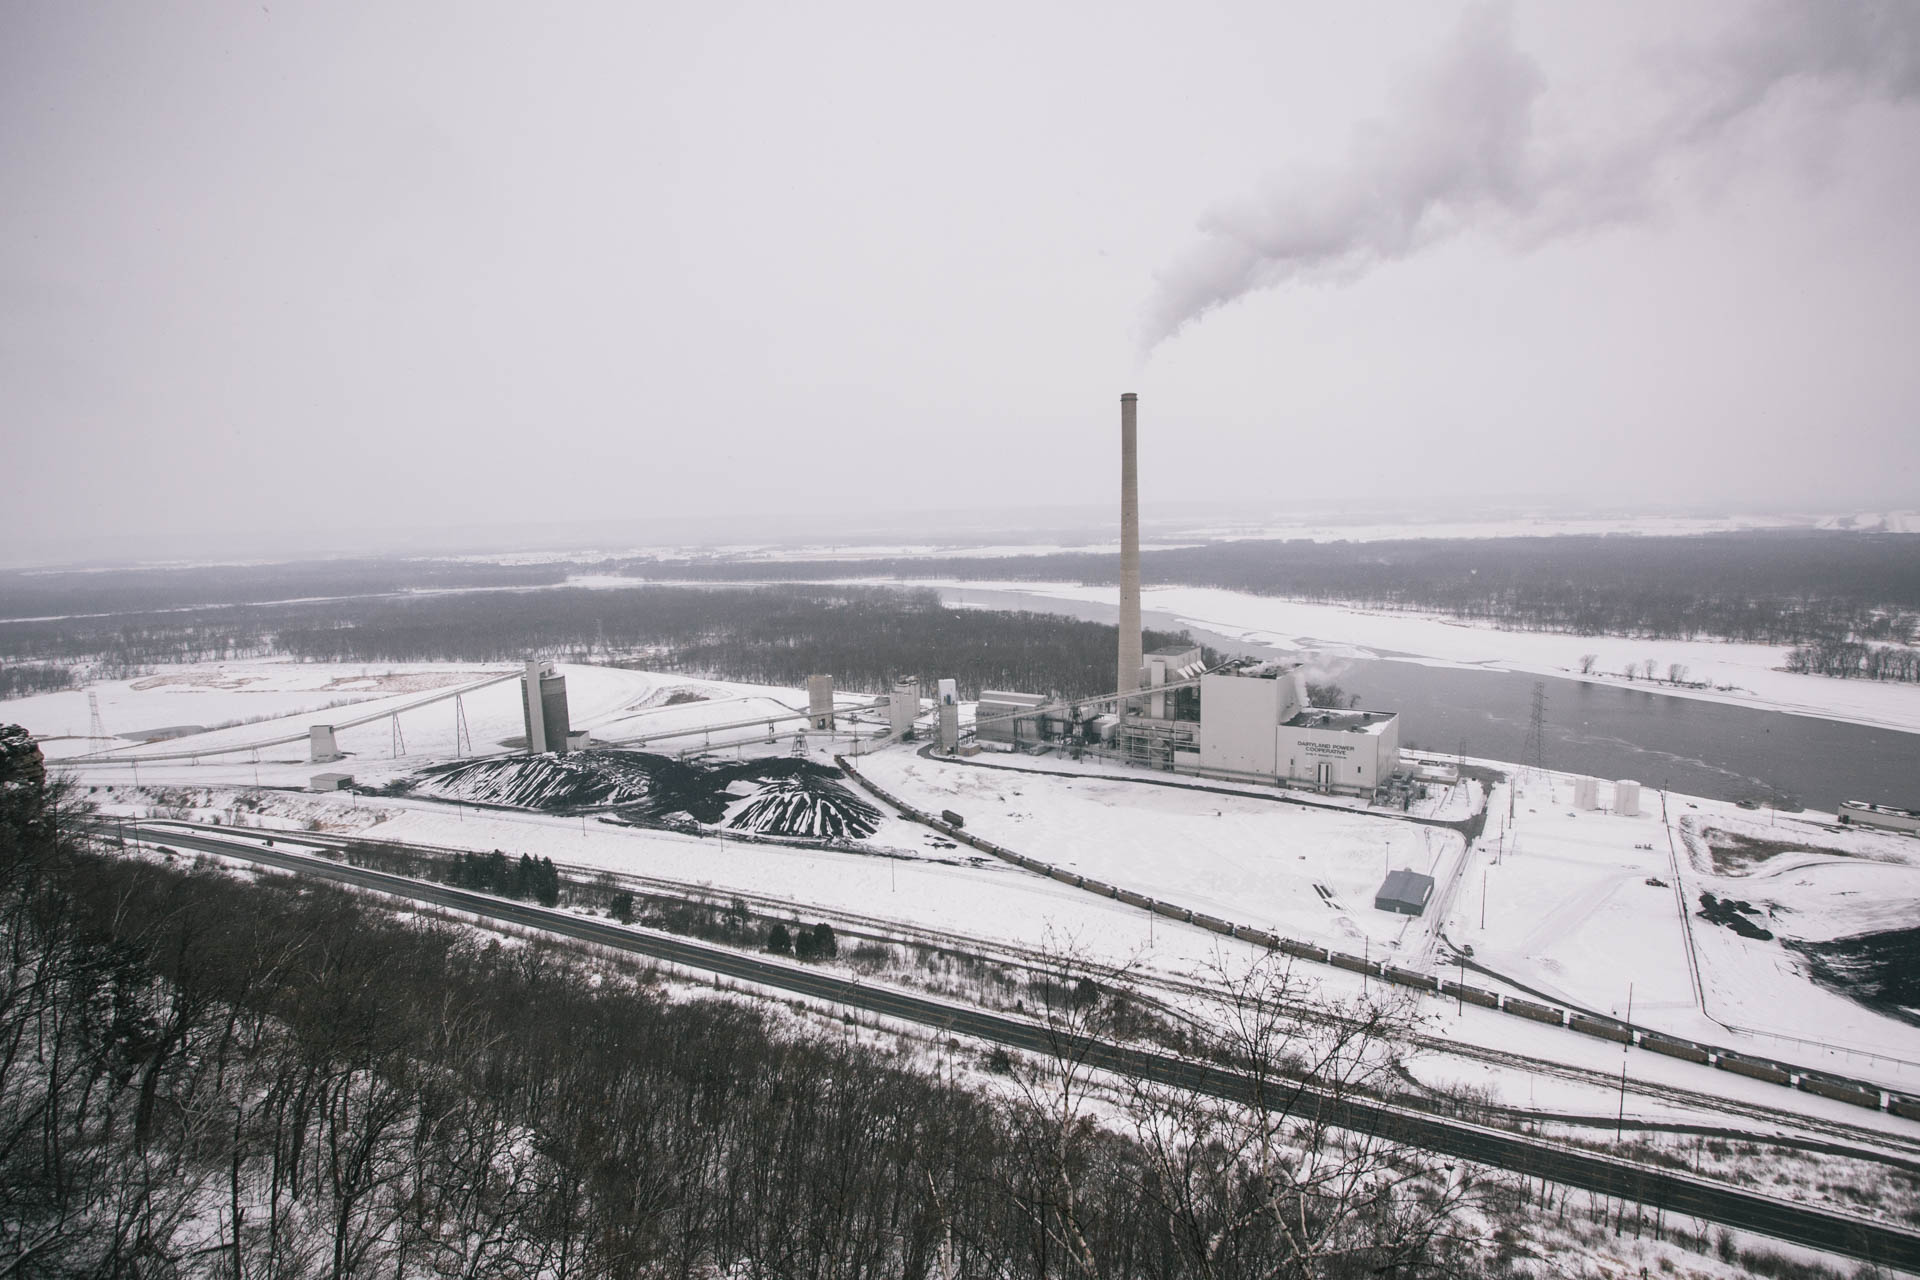 bnsf-aerial-view-alma-coal-power-plant-winter-1009